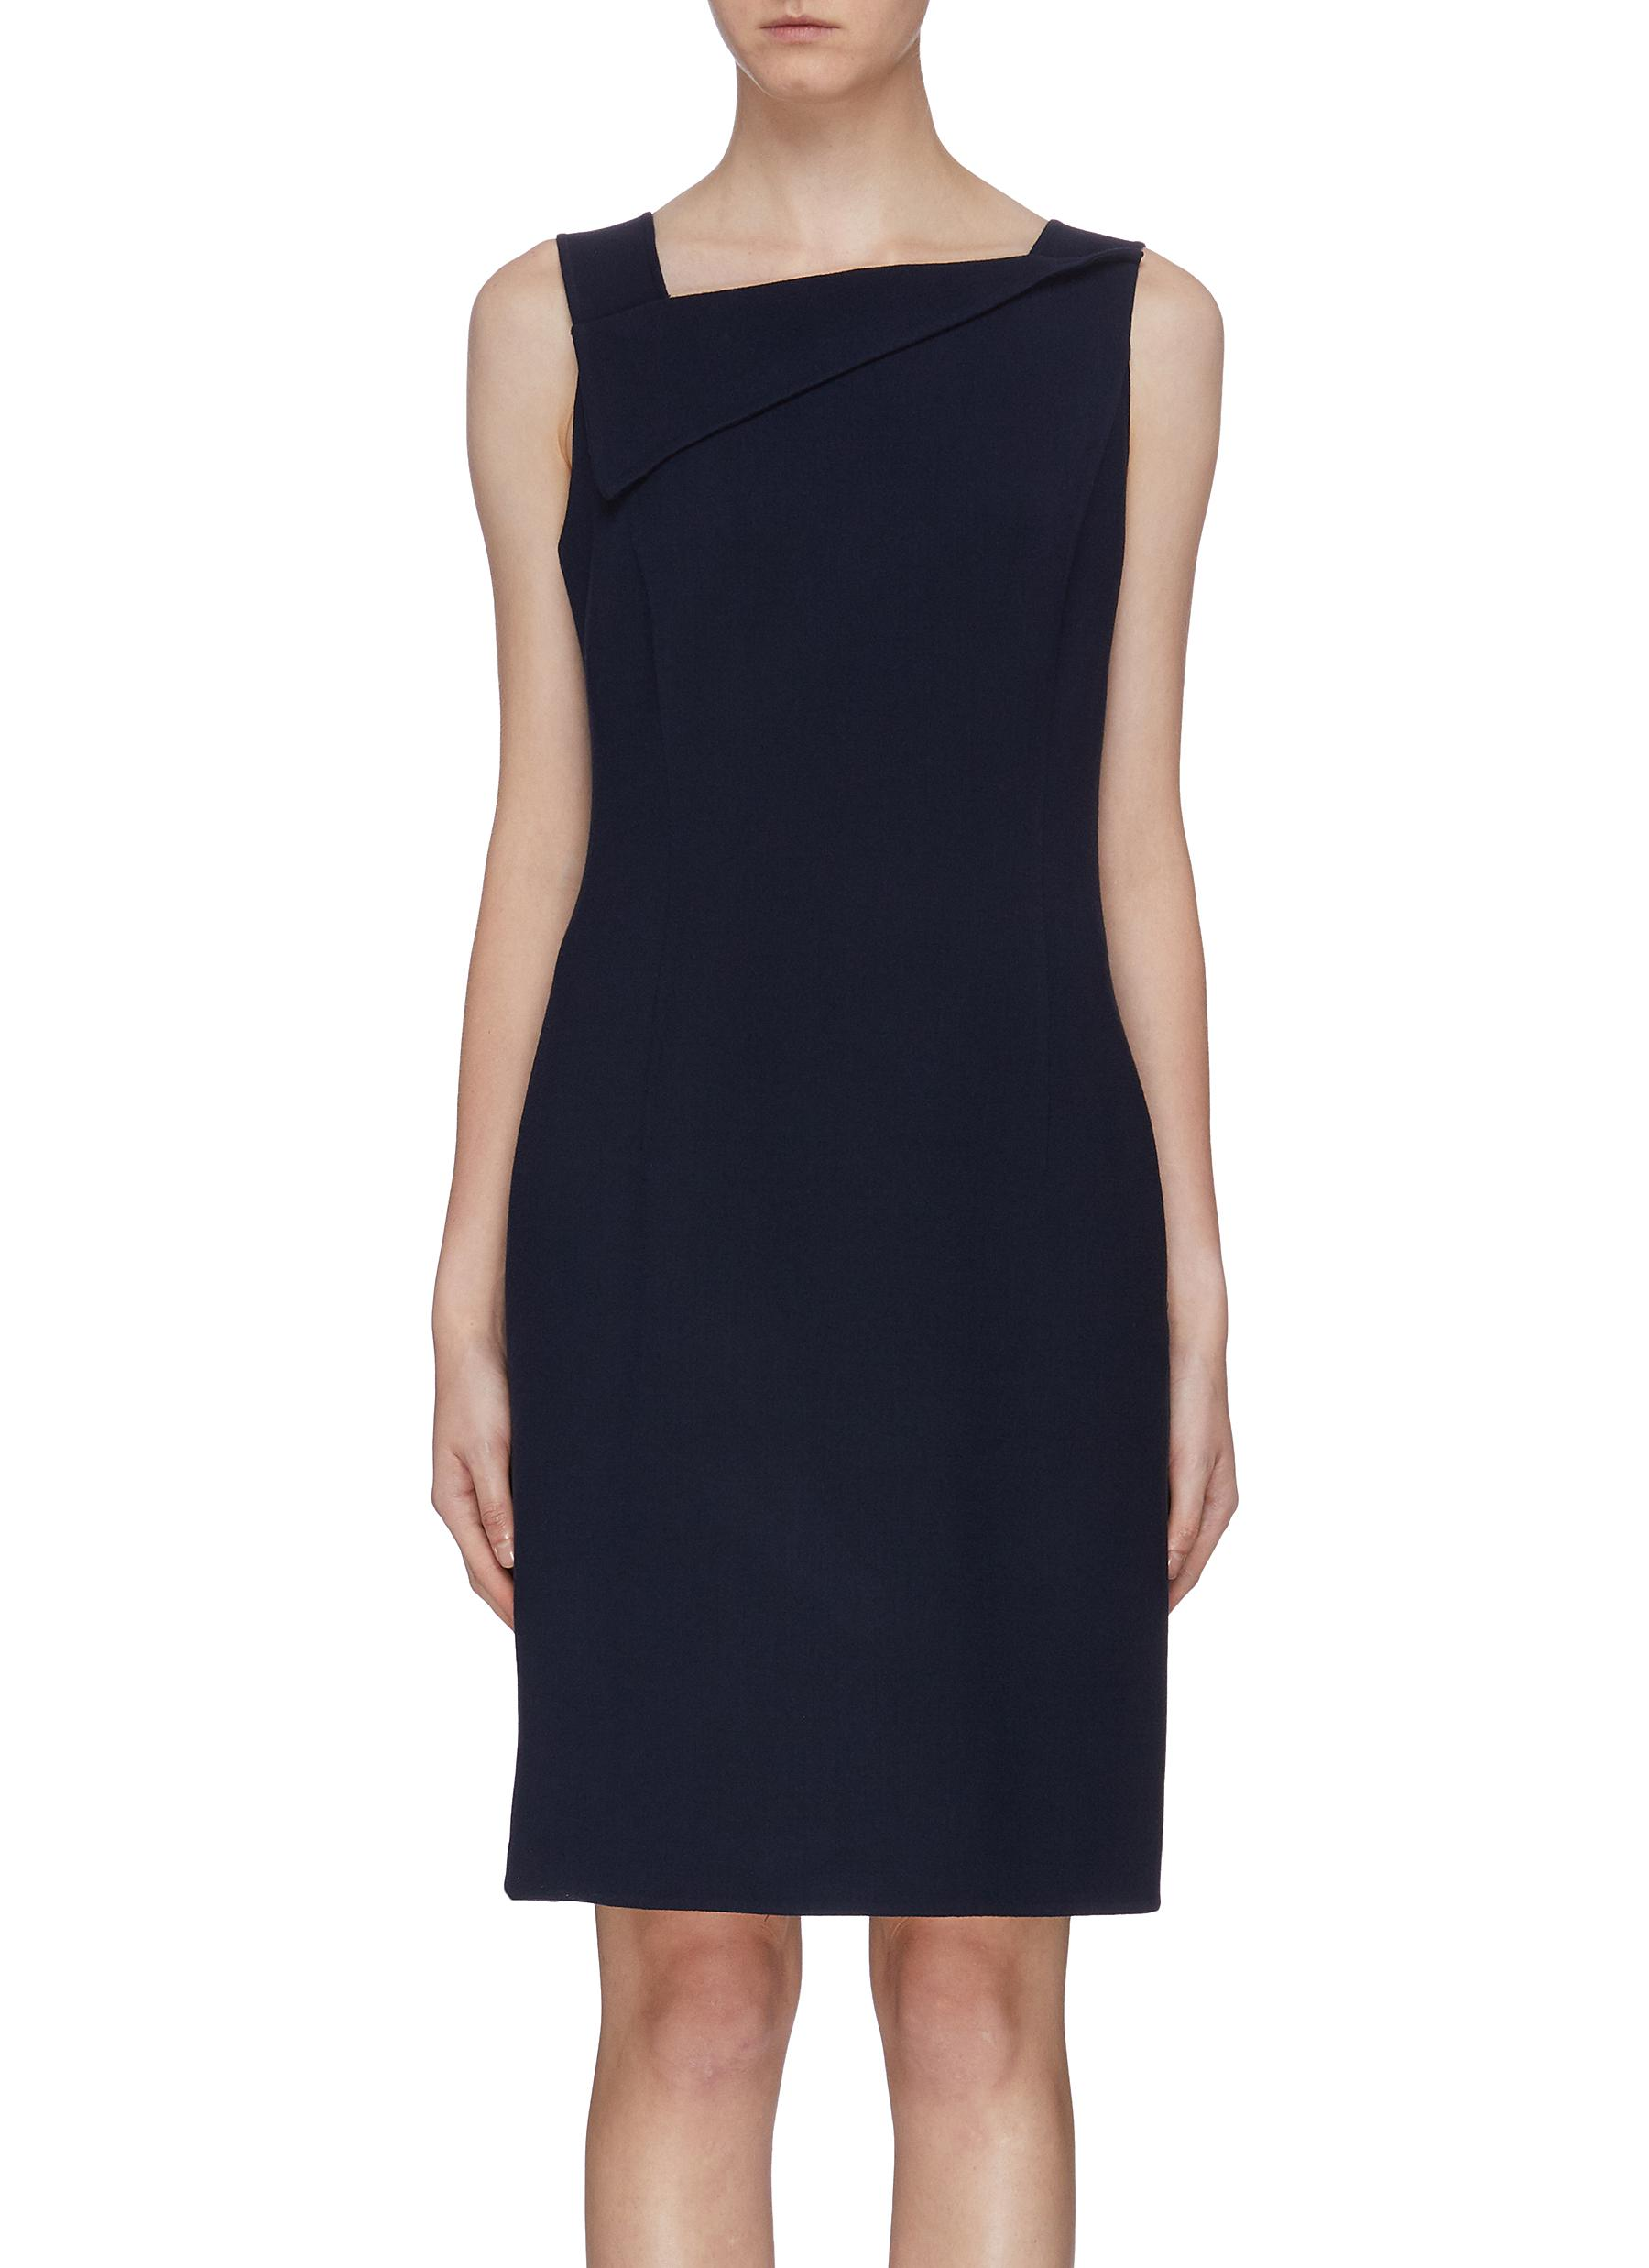 Folded collar sleeveless dress by Oscar De La Renta